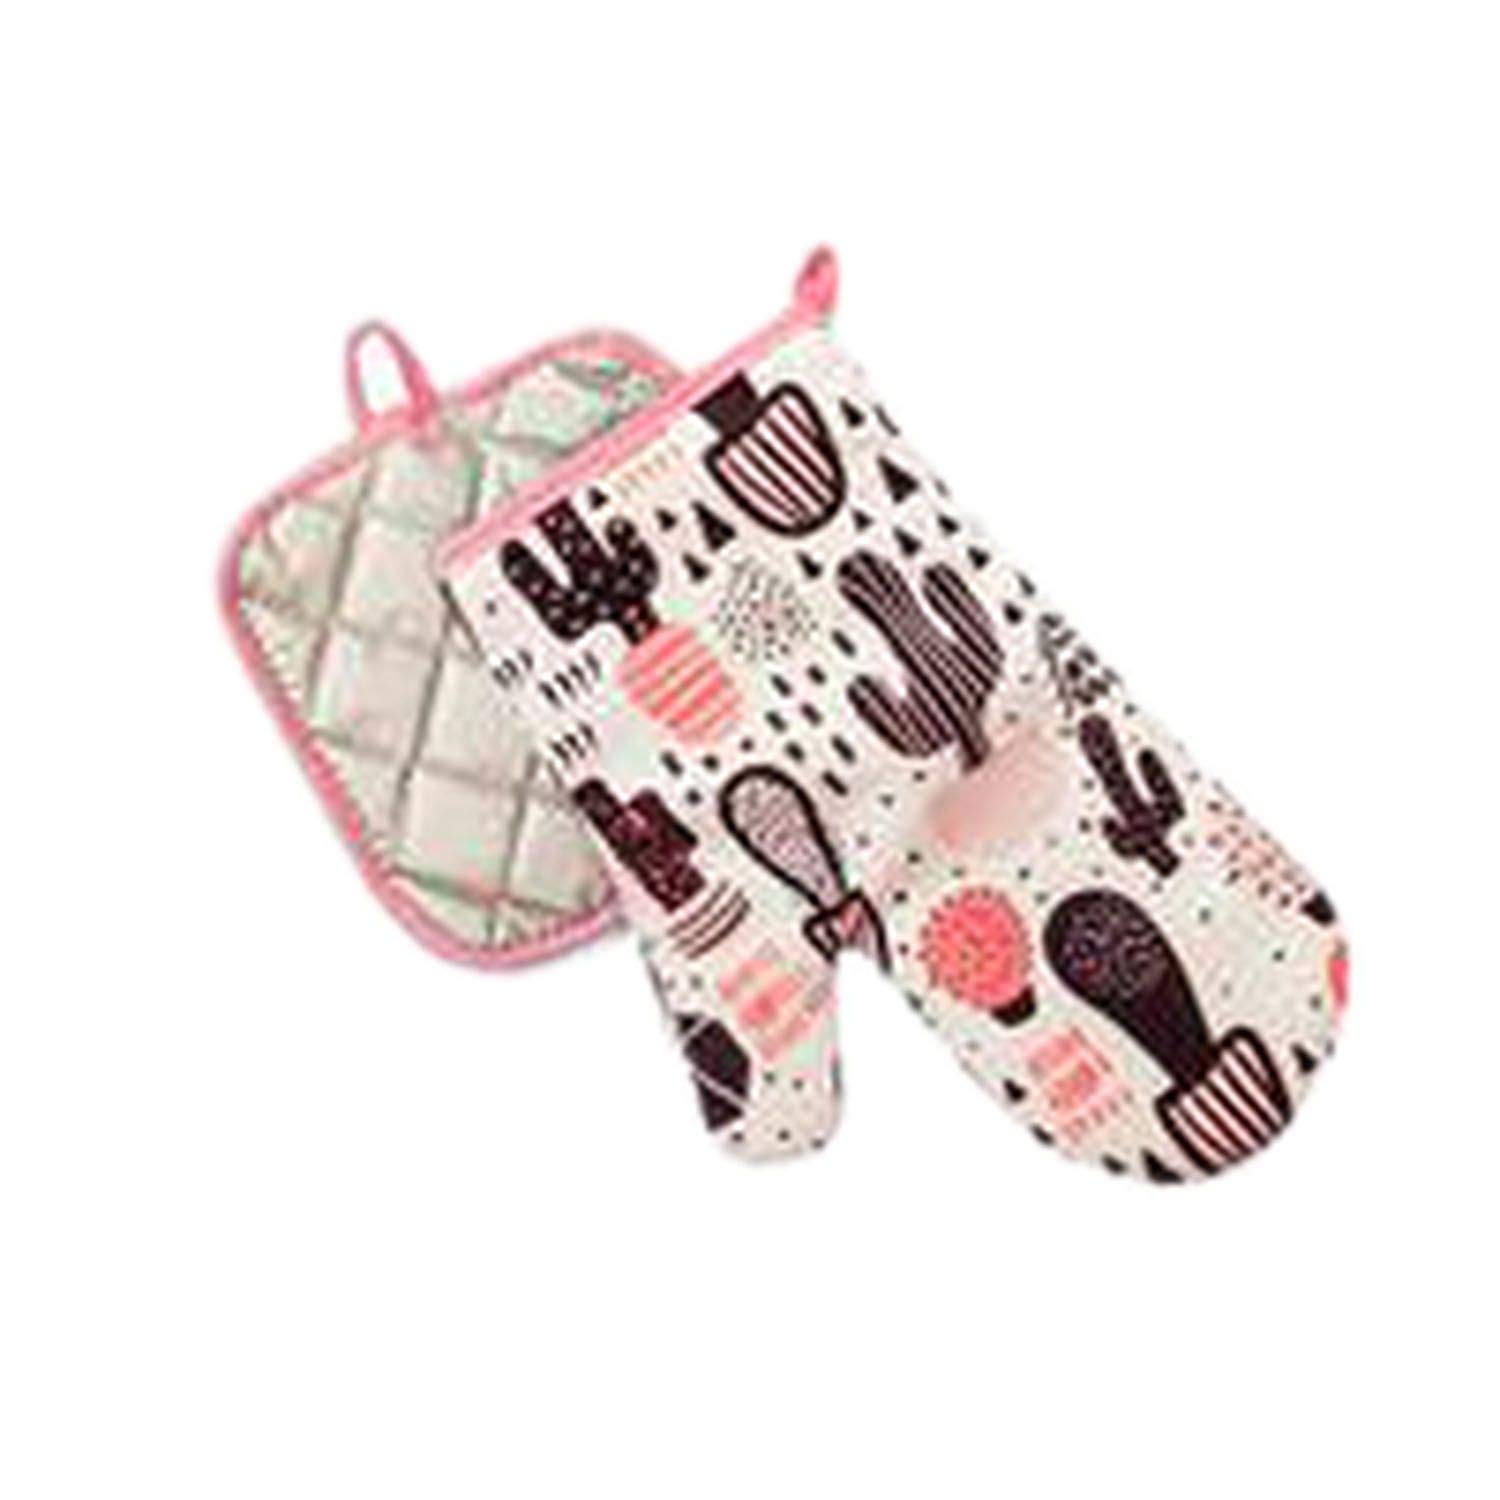 start-imagine Flamingo Microwave Gloves Insulated Pad Cotton Linen Heatproof Padded Anti-Scalding Oven Gloves Mitts Potr Kitchen Tool,S9